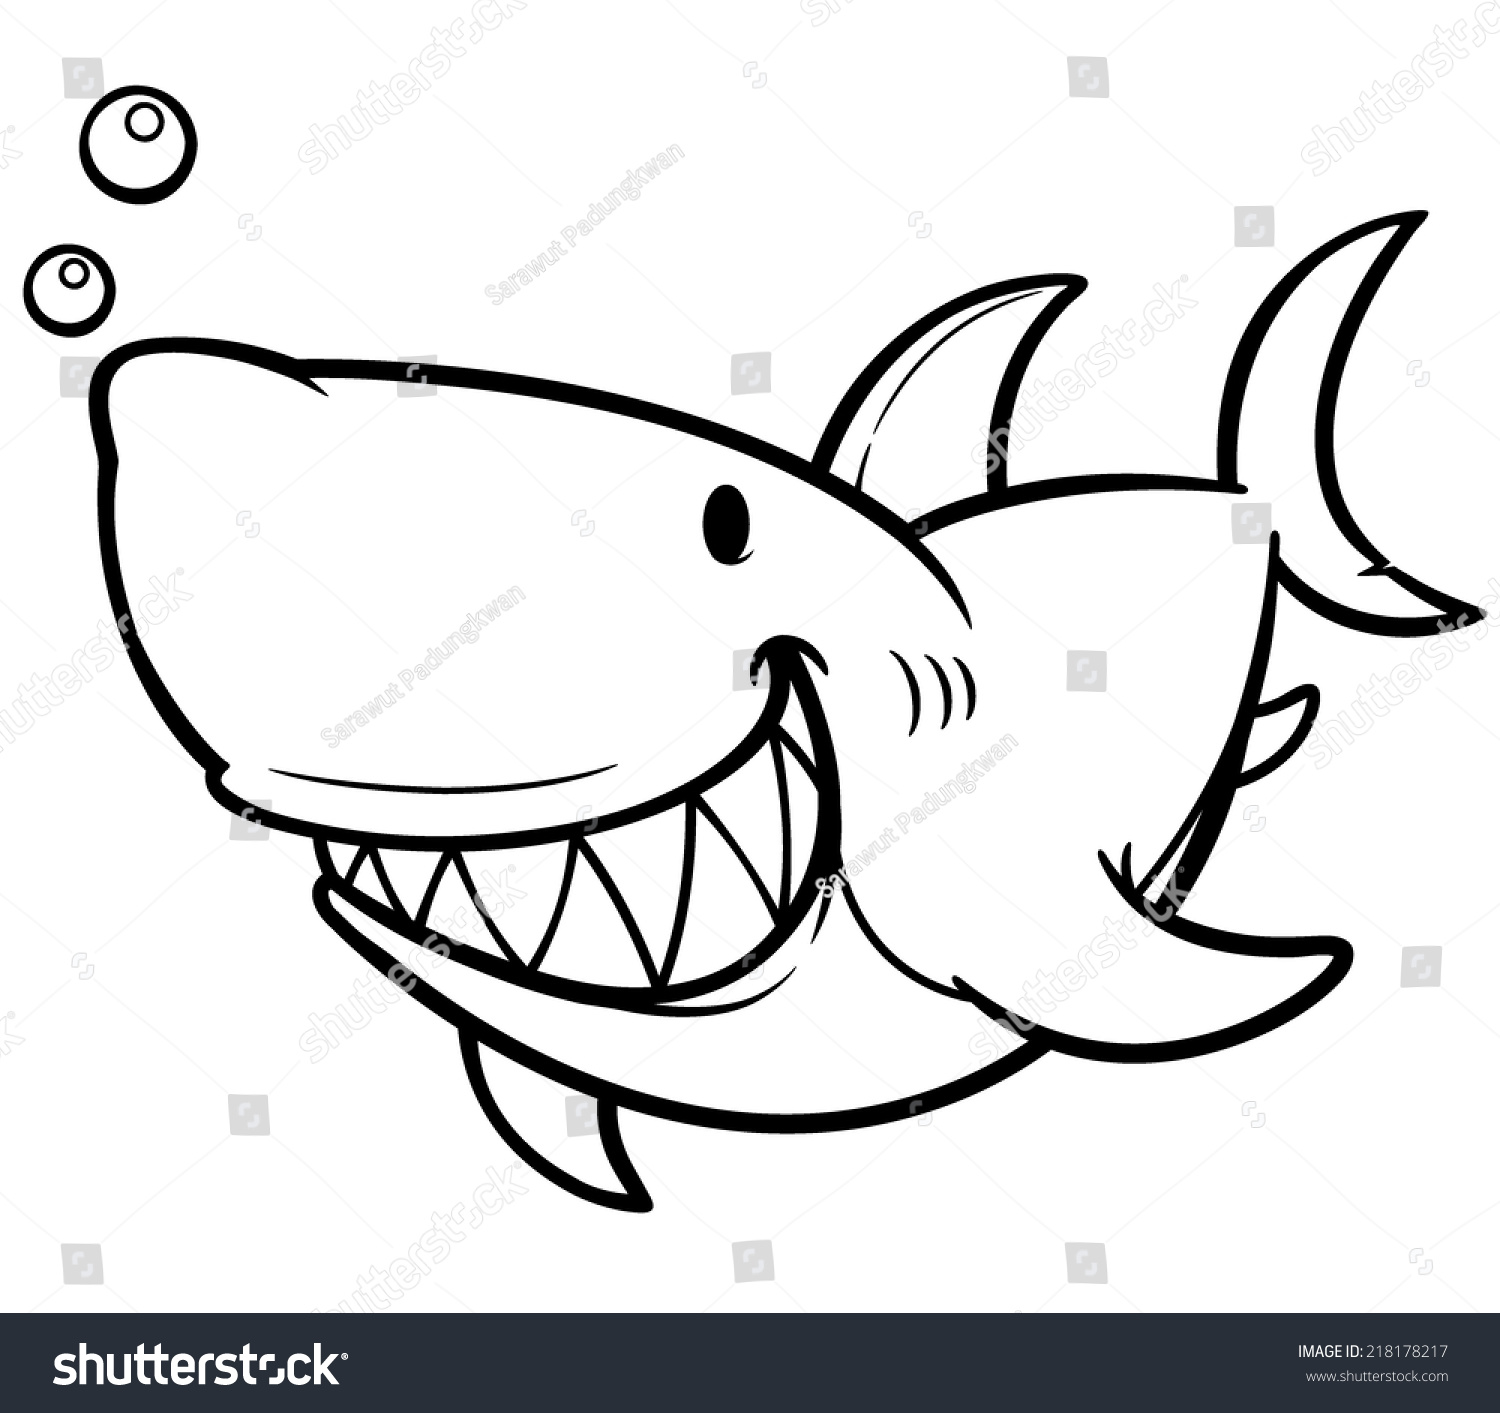 vector illustration of cartoon shark coloring book